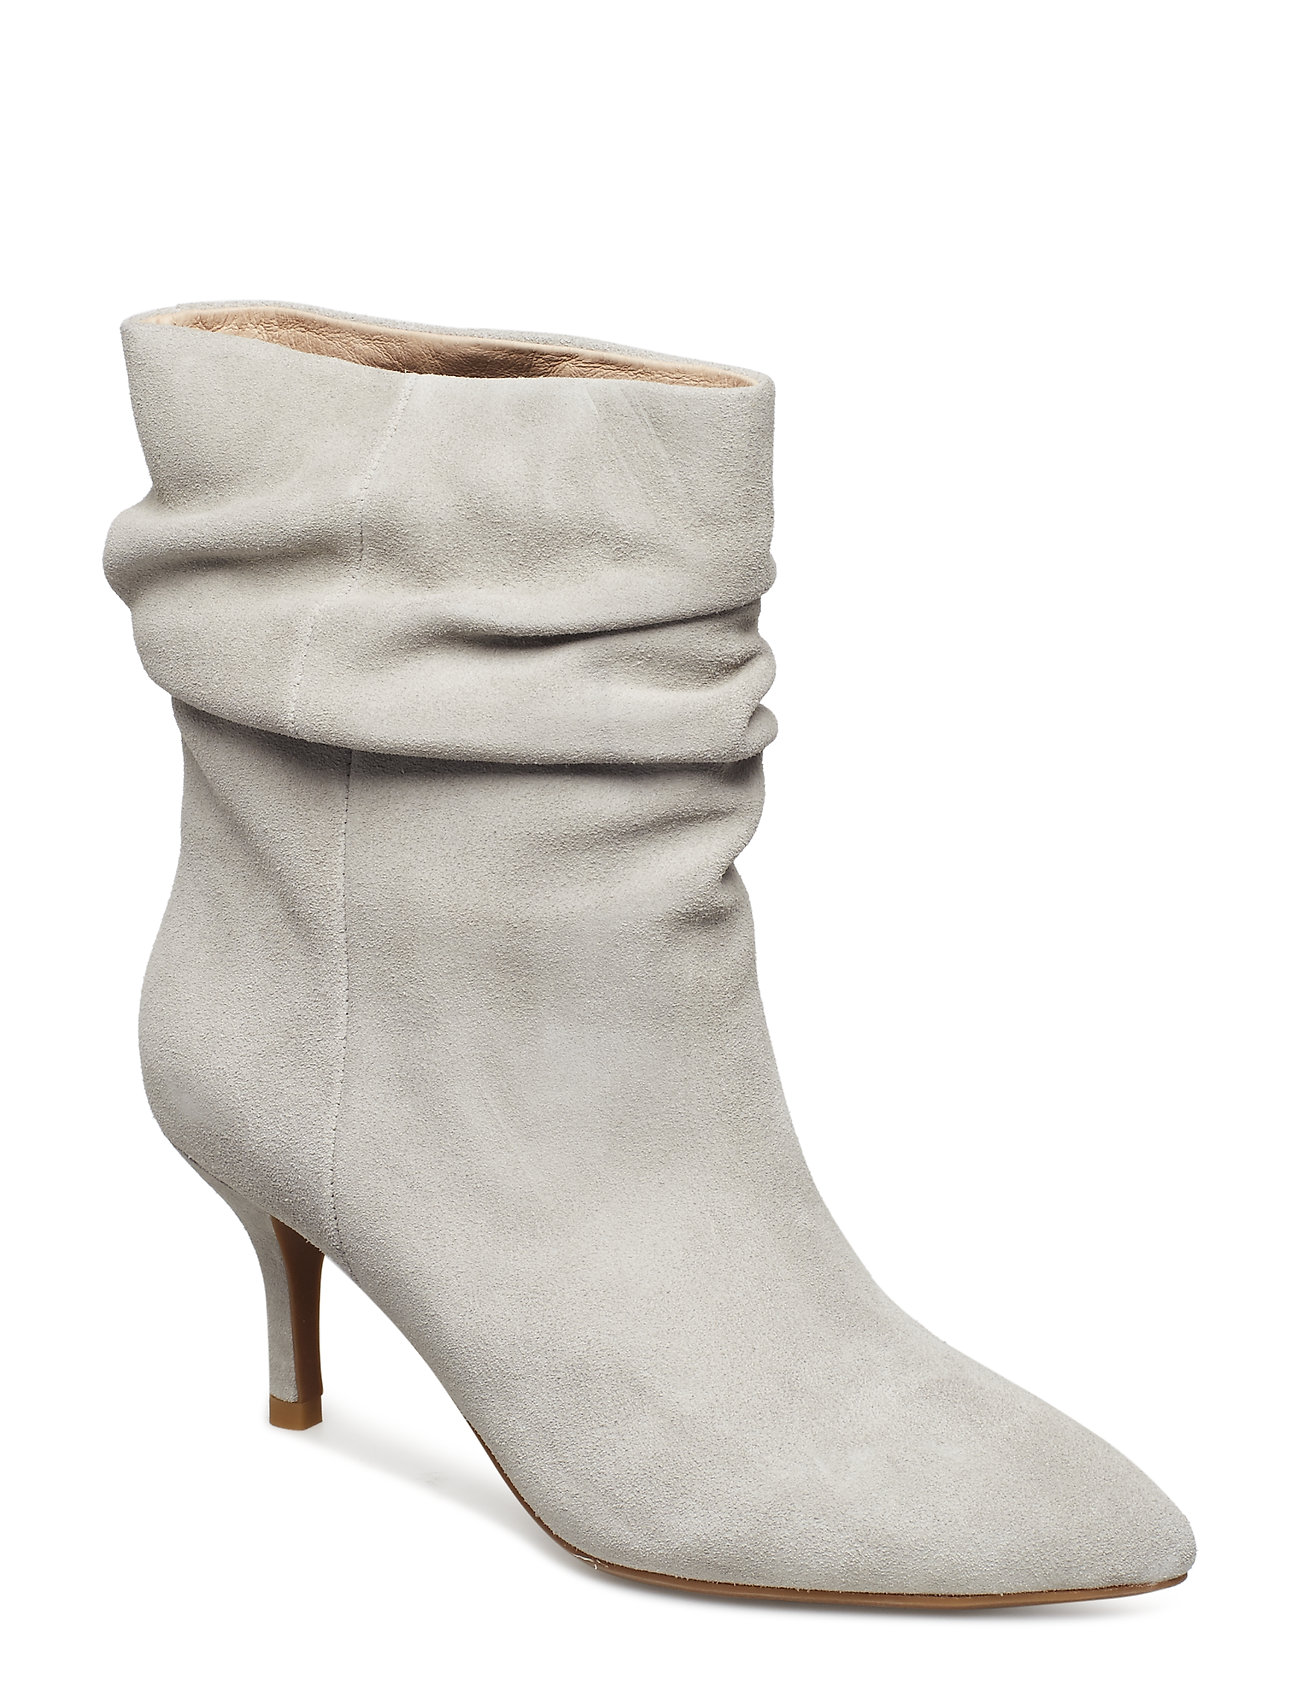 Image of Agnete Slouchy Shoes Boots Ankle Boots Ankle Boot - Heel Beige Shoe The Bear (3452100411)